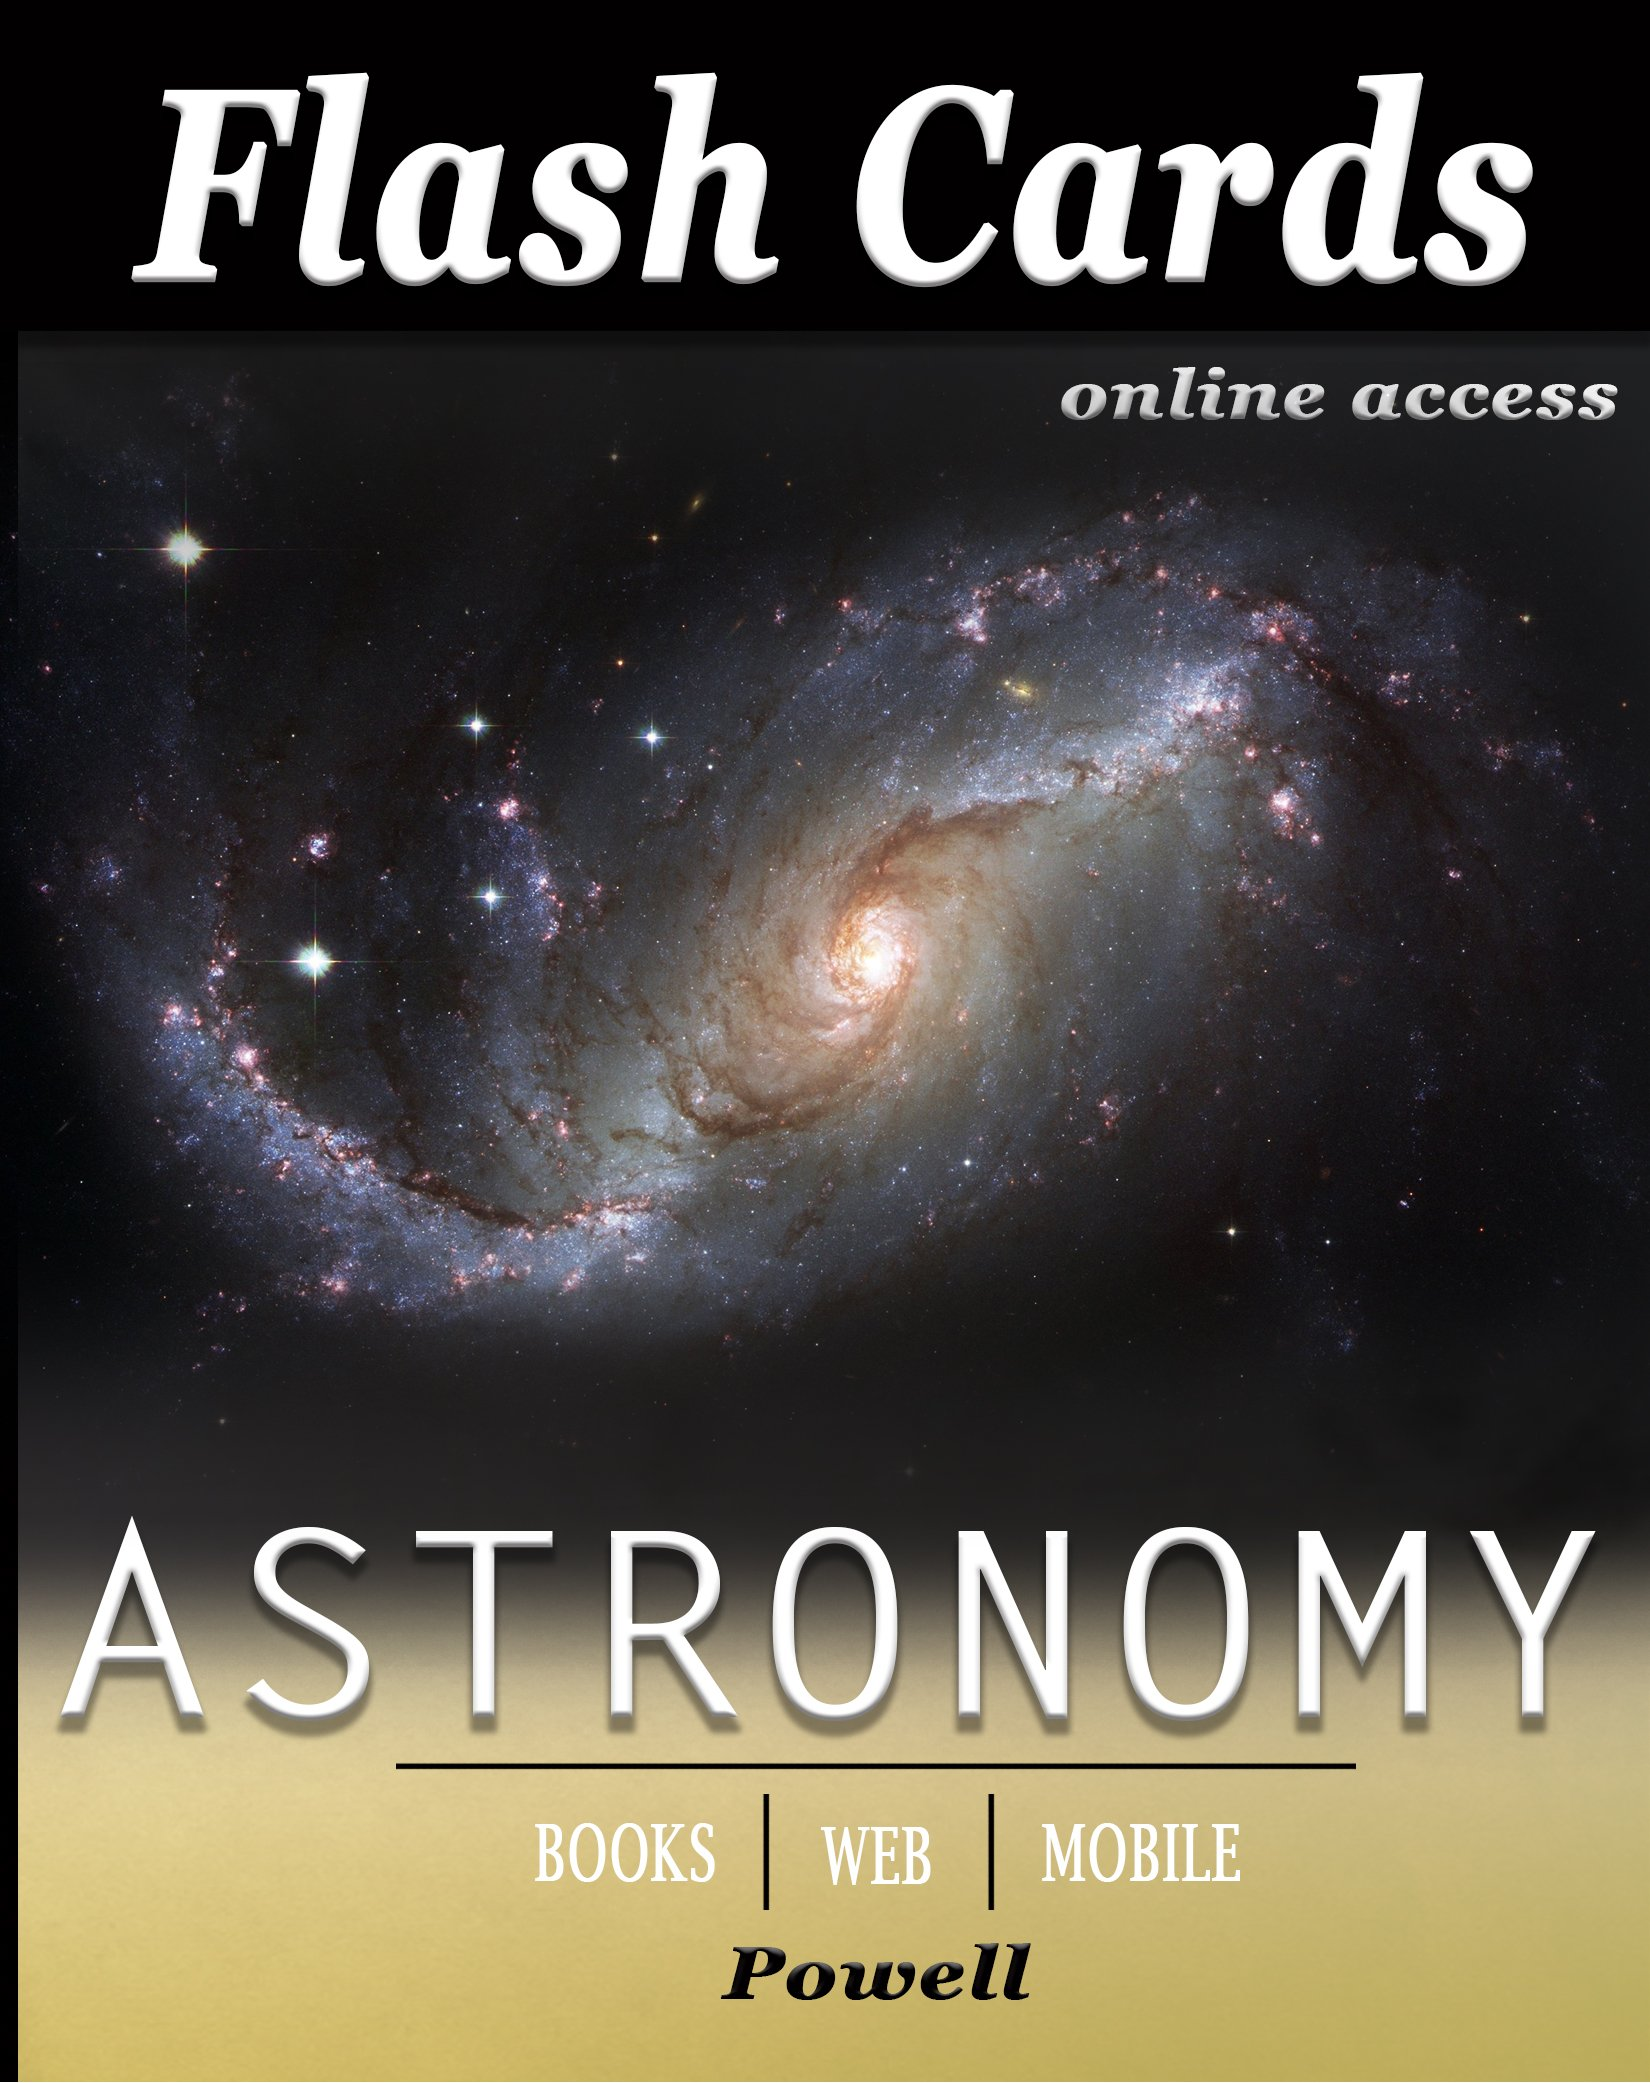 Download Access Card for Online Flash Cards, Astronomical events PDF